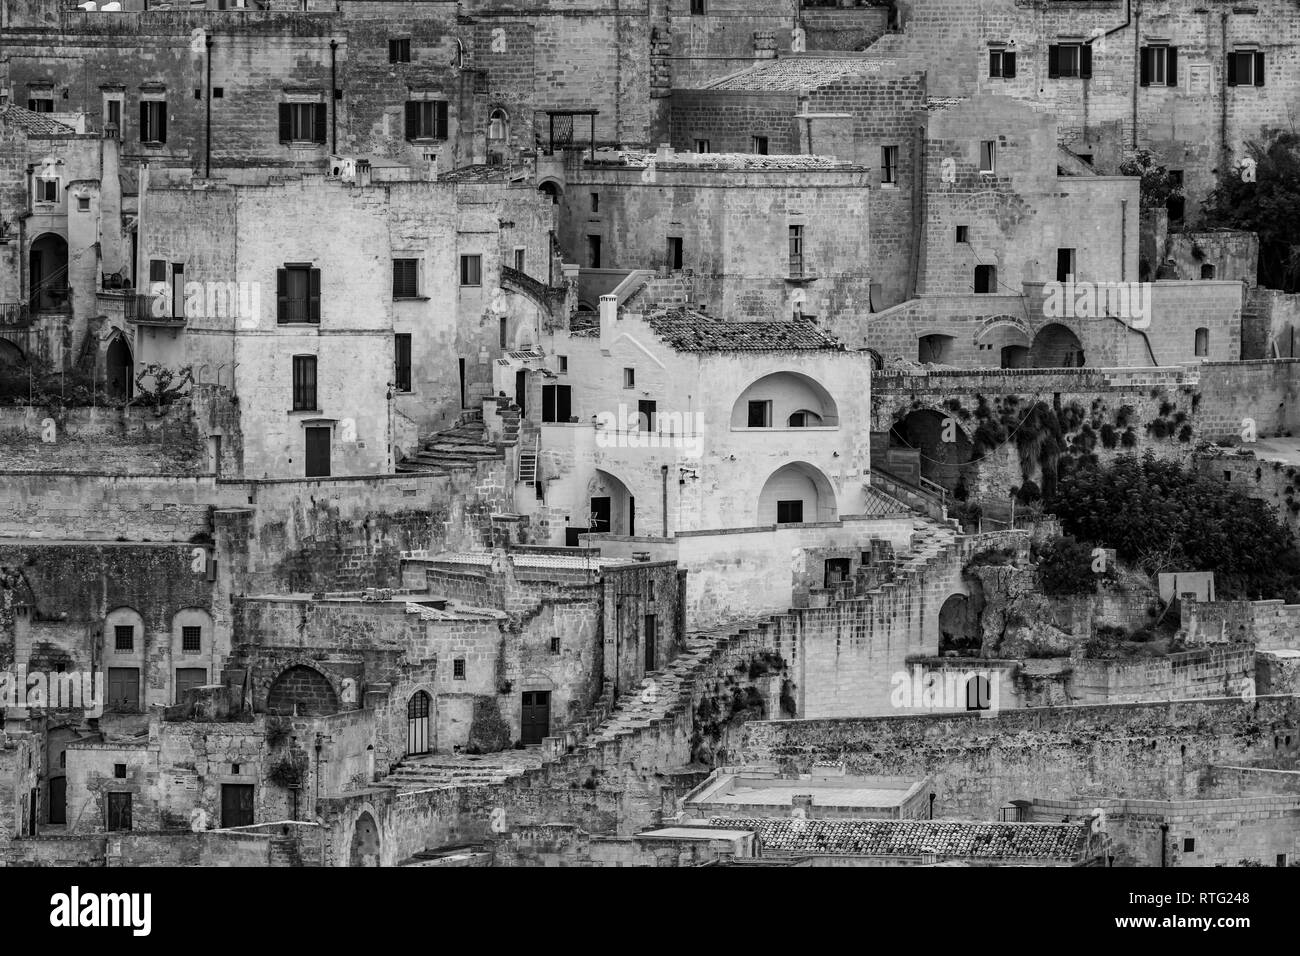 Amazing close up black and white view of ancient town of matera the sassi di matera basilicata southern italy architectural details and buildings